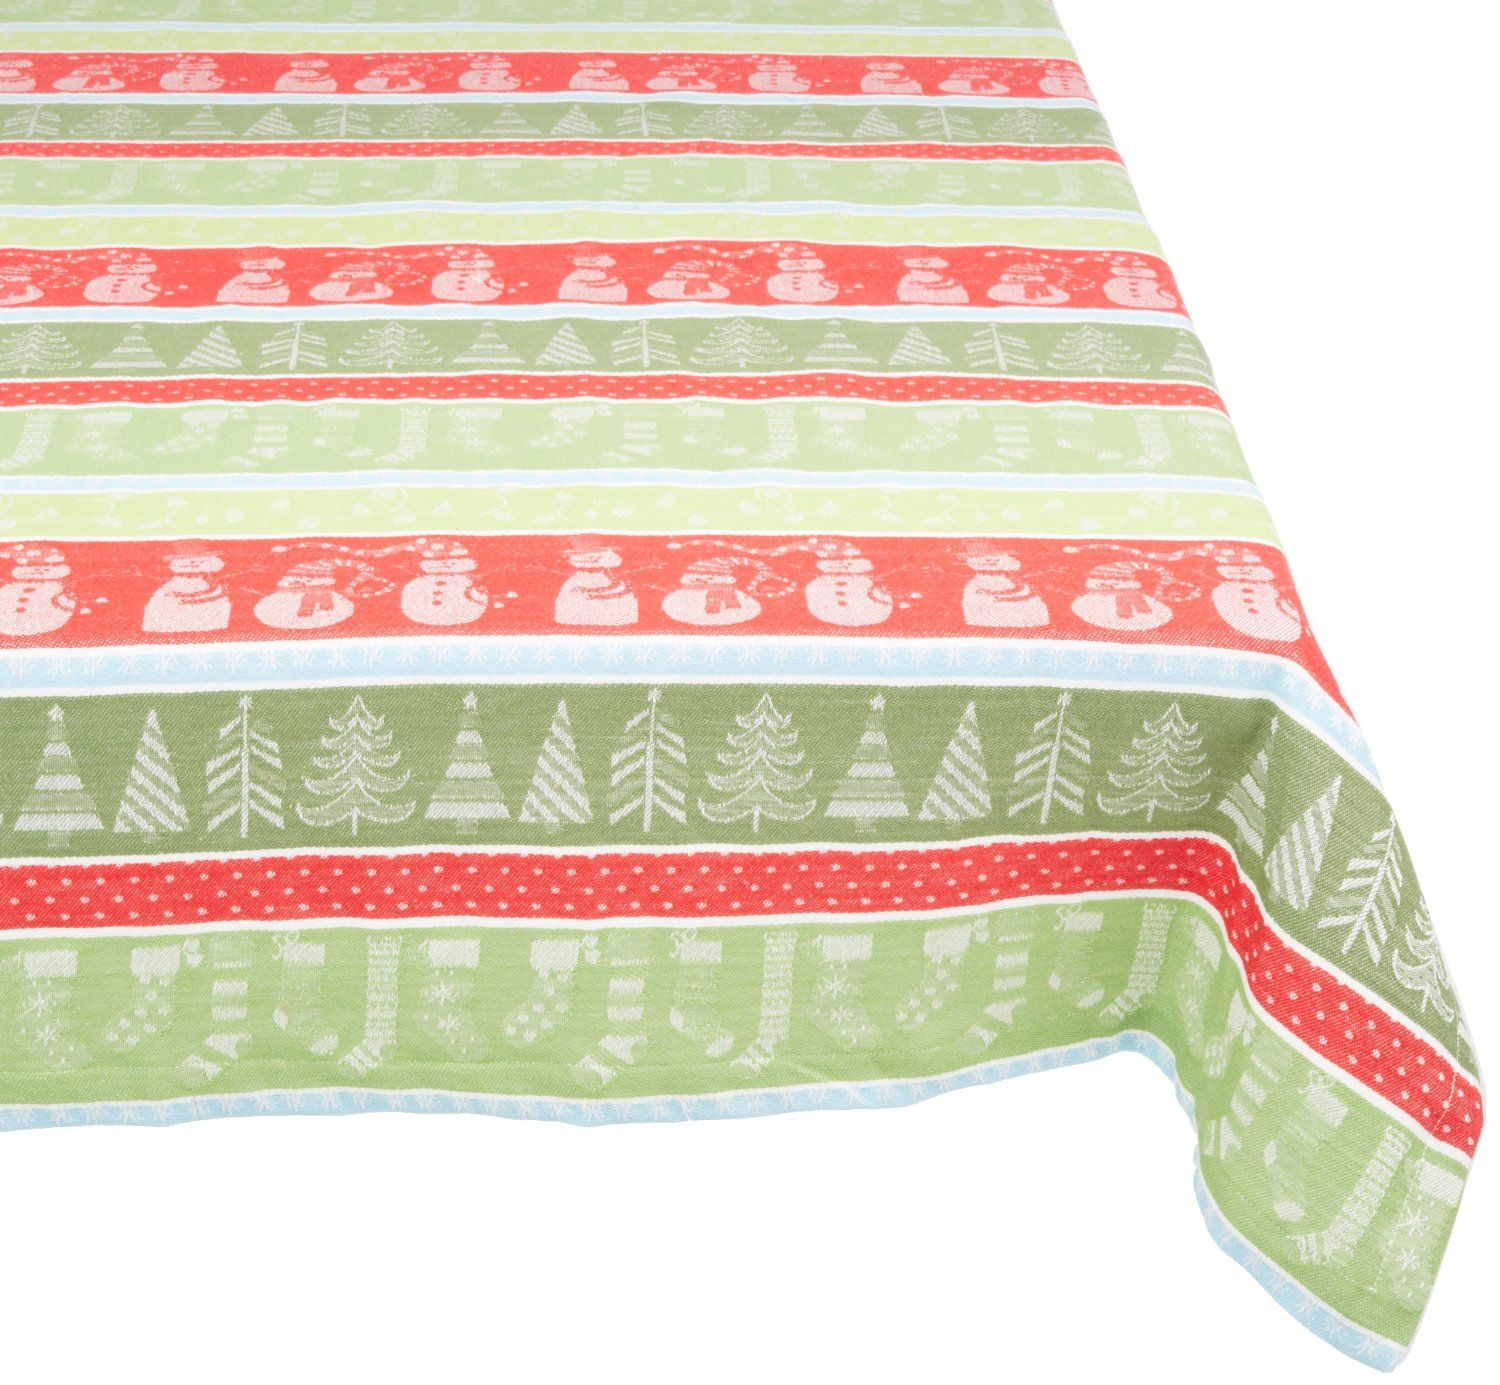 Captivating Amazon.com   DII 100% Cotton, Machine Washable Tablecloth Winter Fun 60x84 #